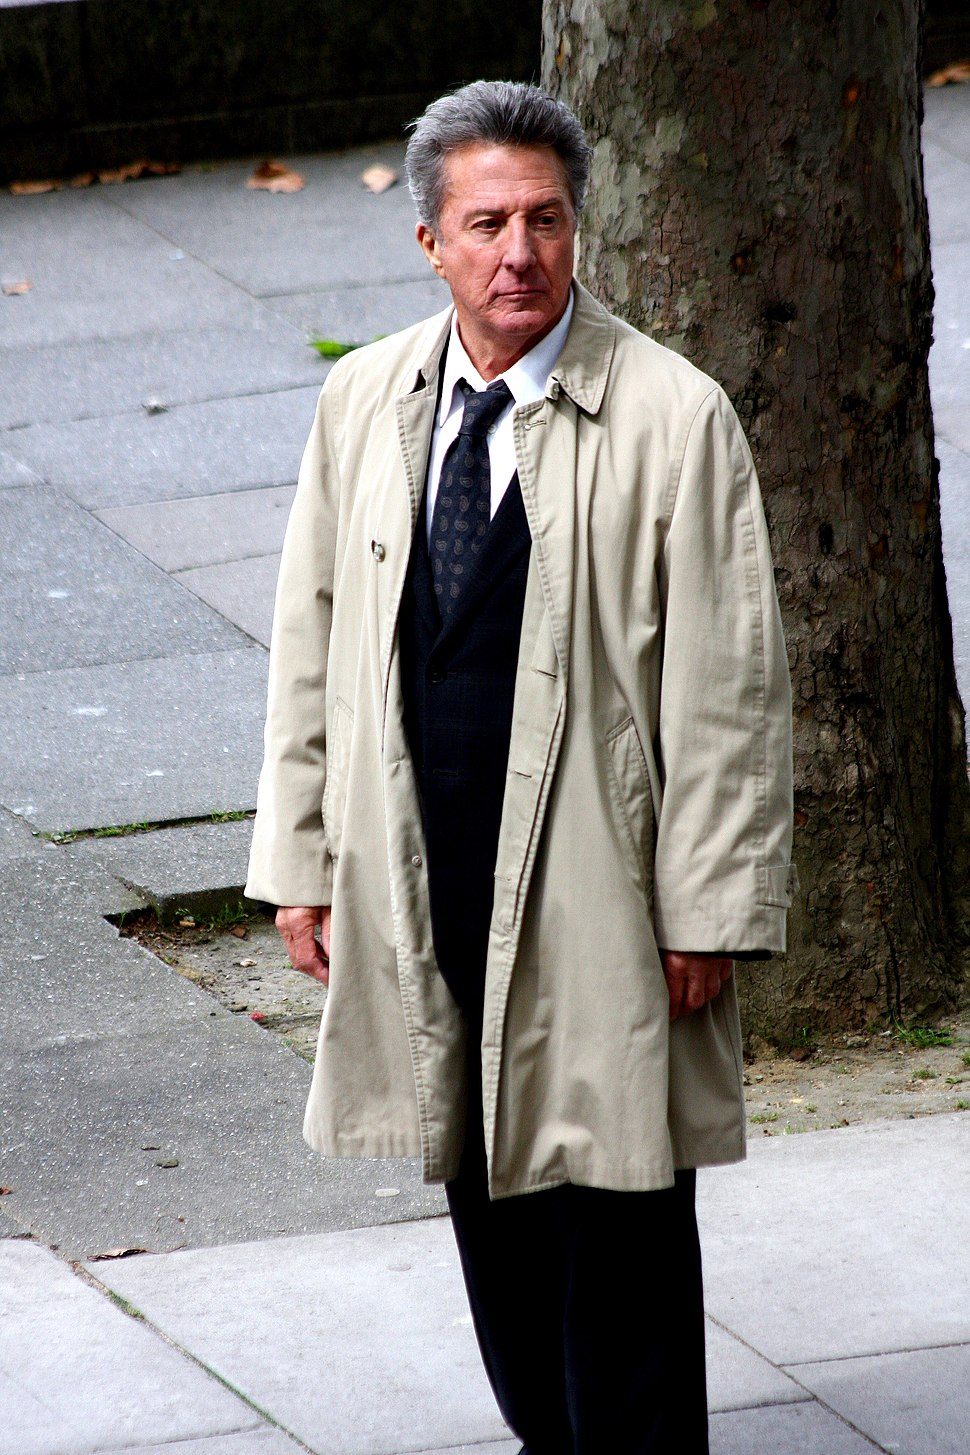 Dustin Hoffman in Last Chance Harvey